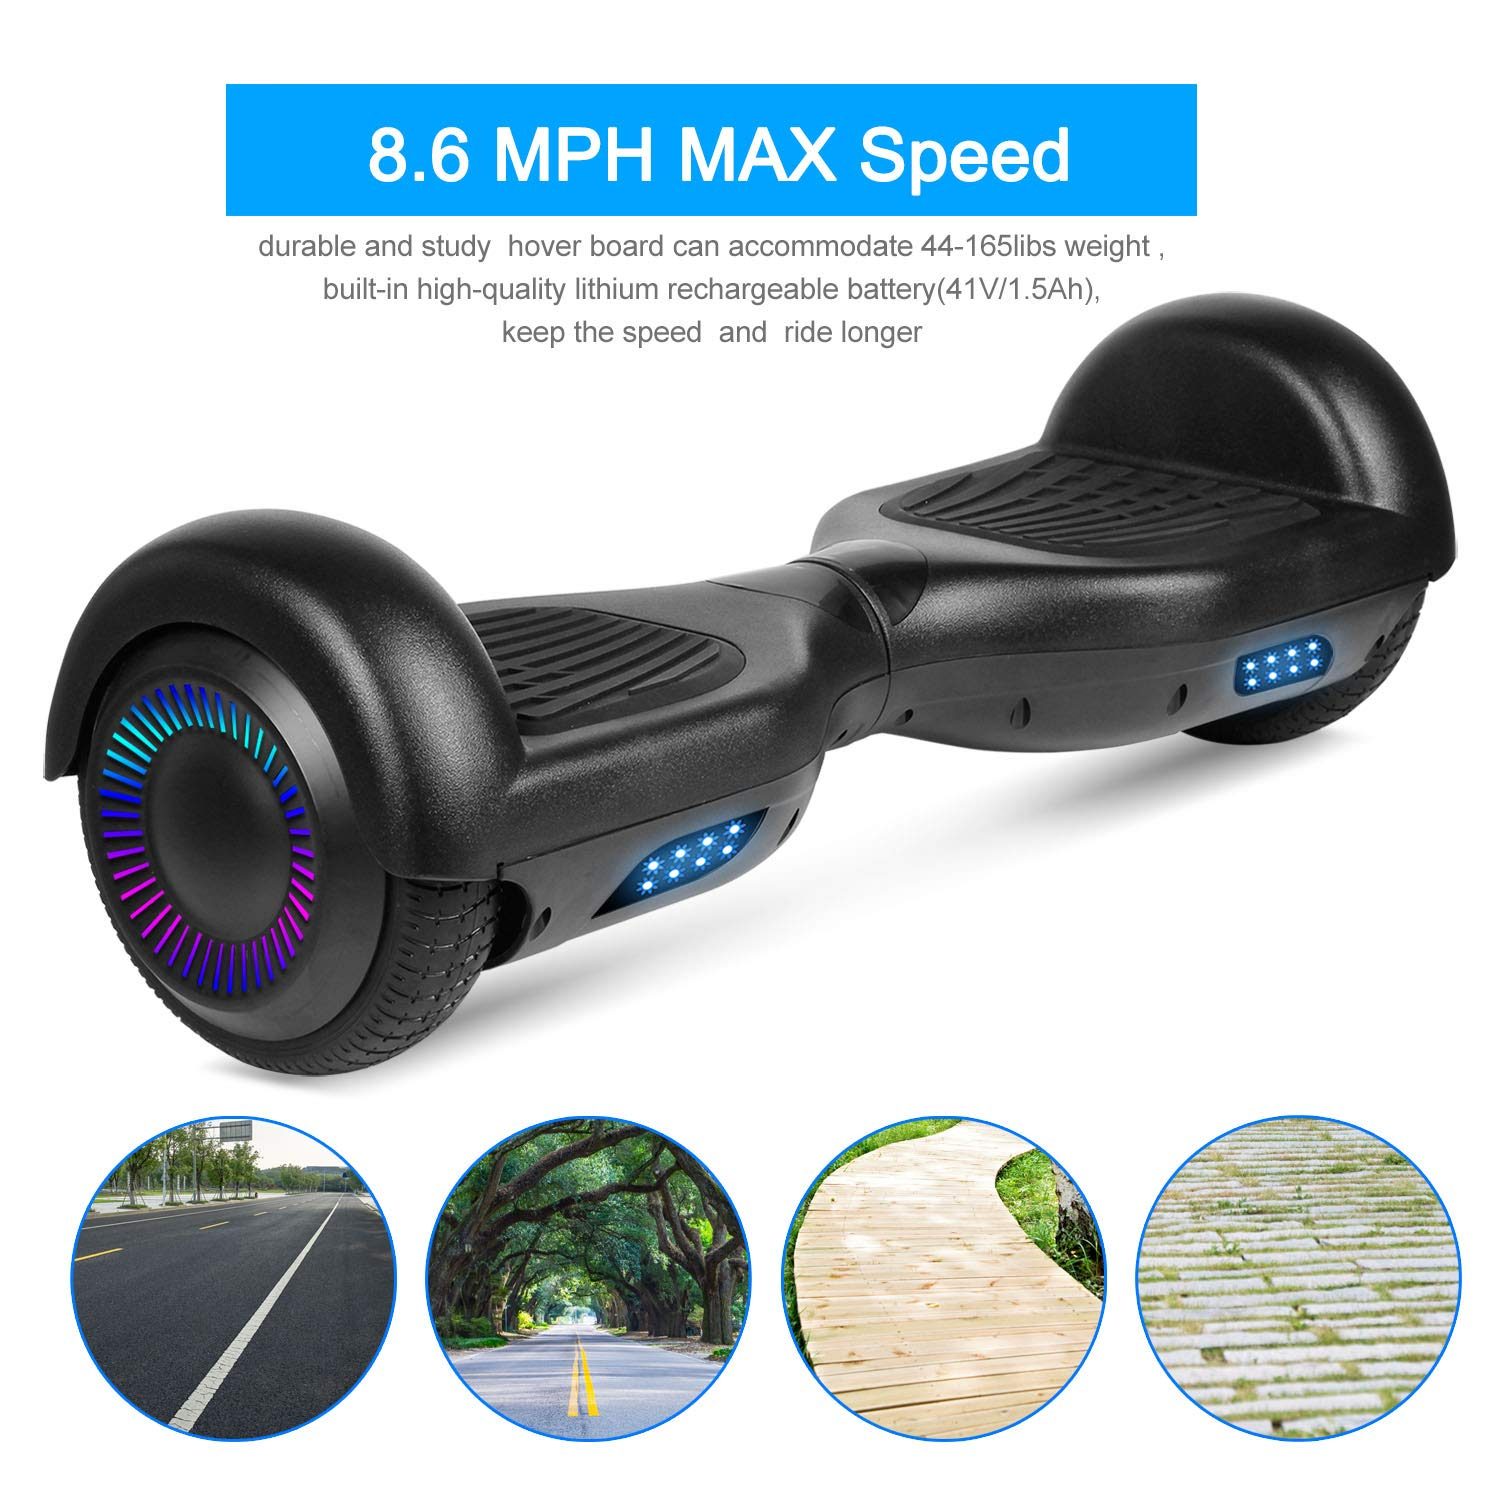 SWEETBUY Hoverboards UL Certified 6.5 Smart Scooter Two-Wheel self Balancing Electric Scooter Light Free Bag and Charger Included by SWEETBUY (Image #3)